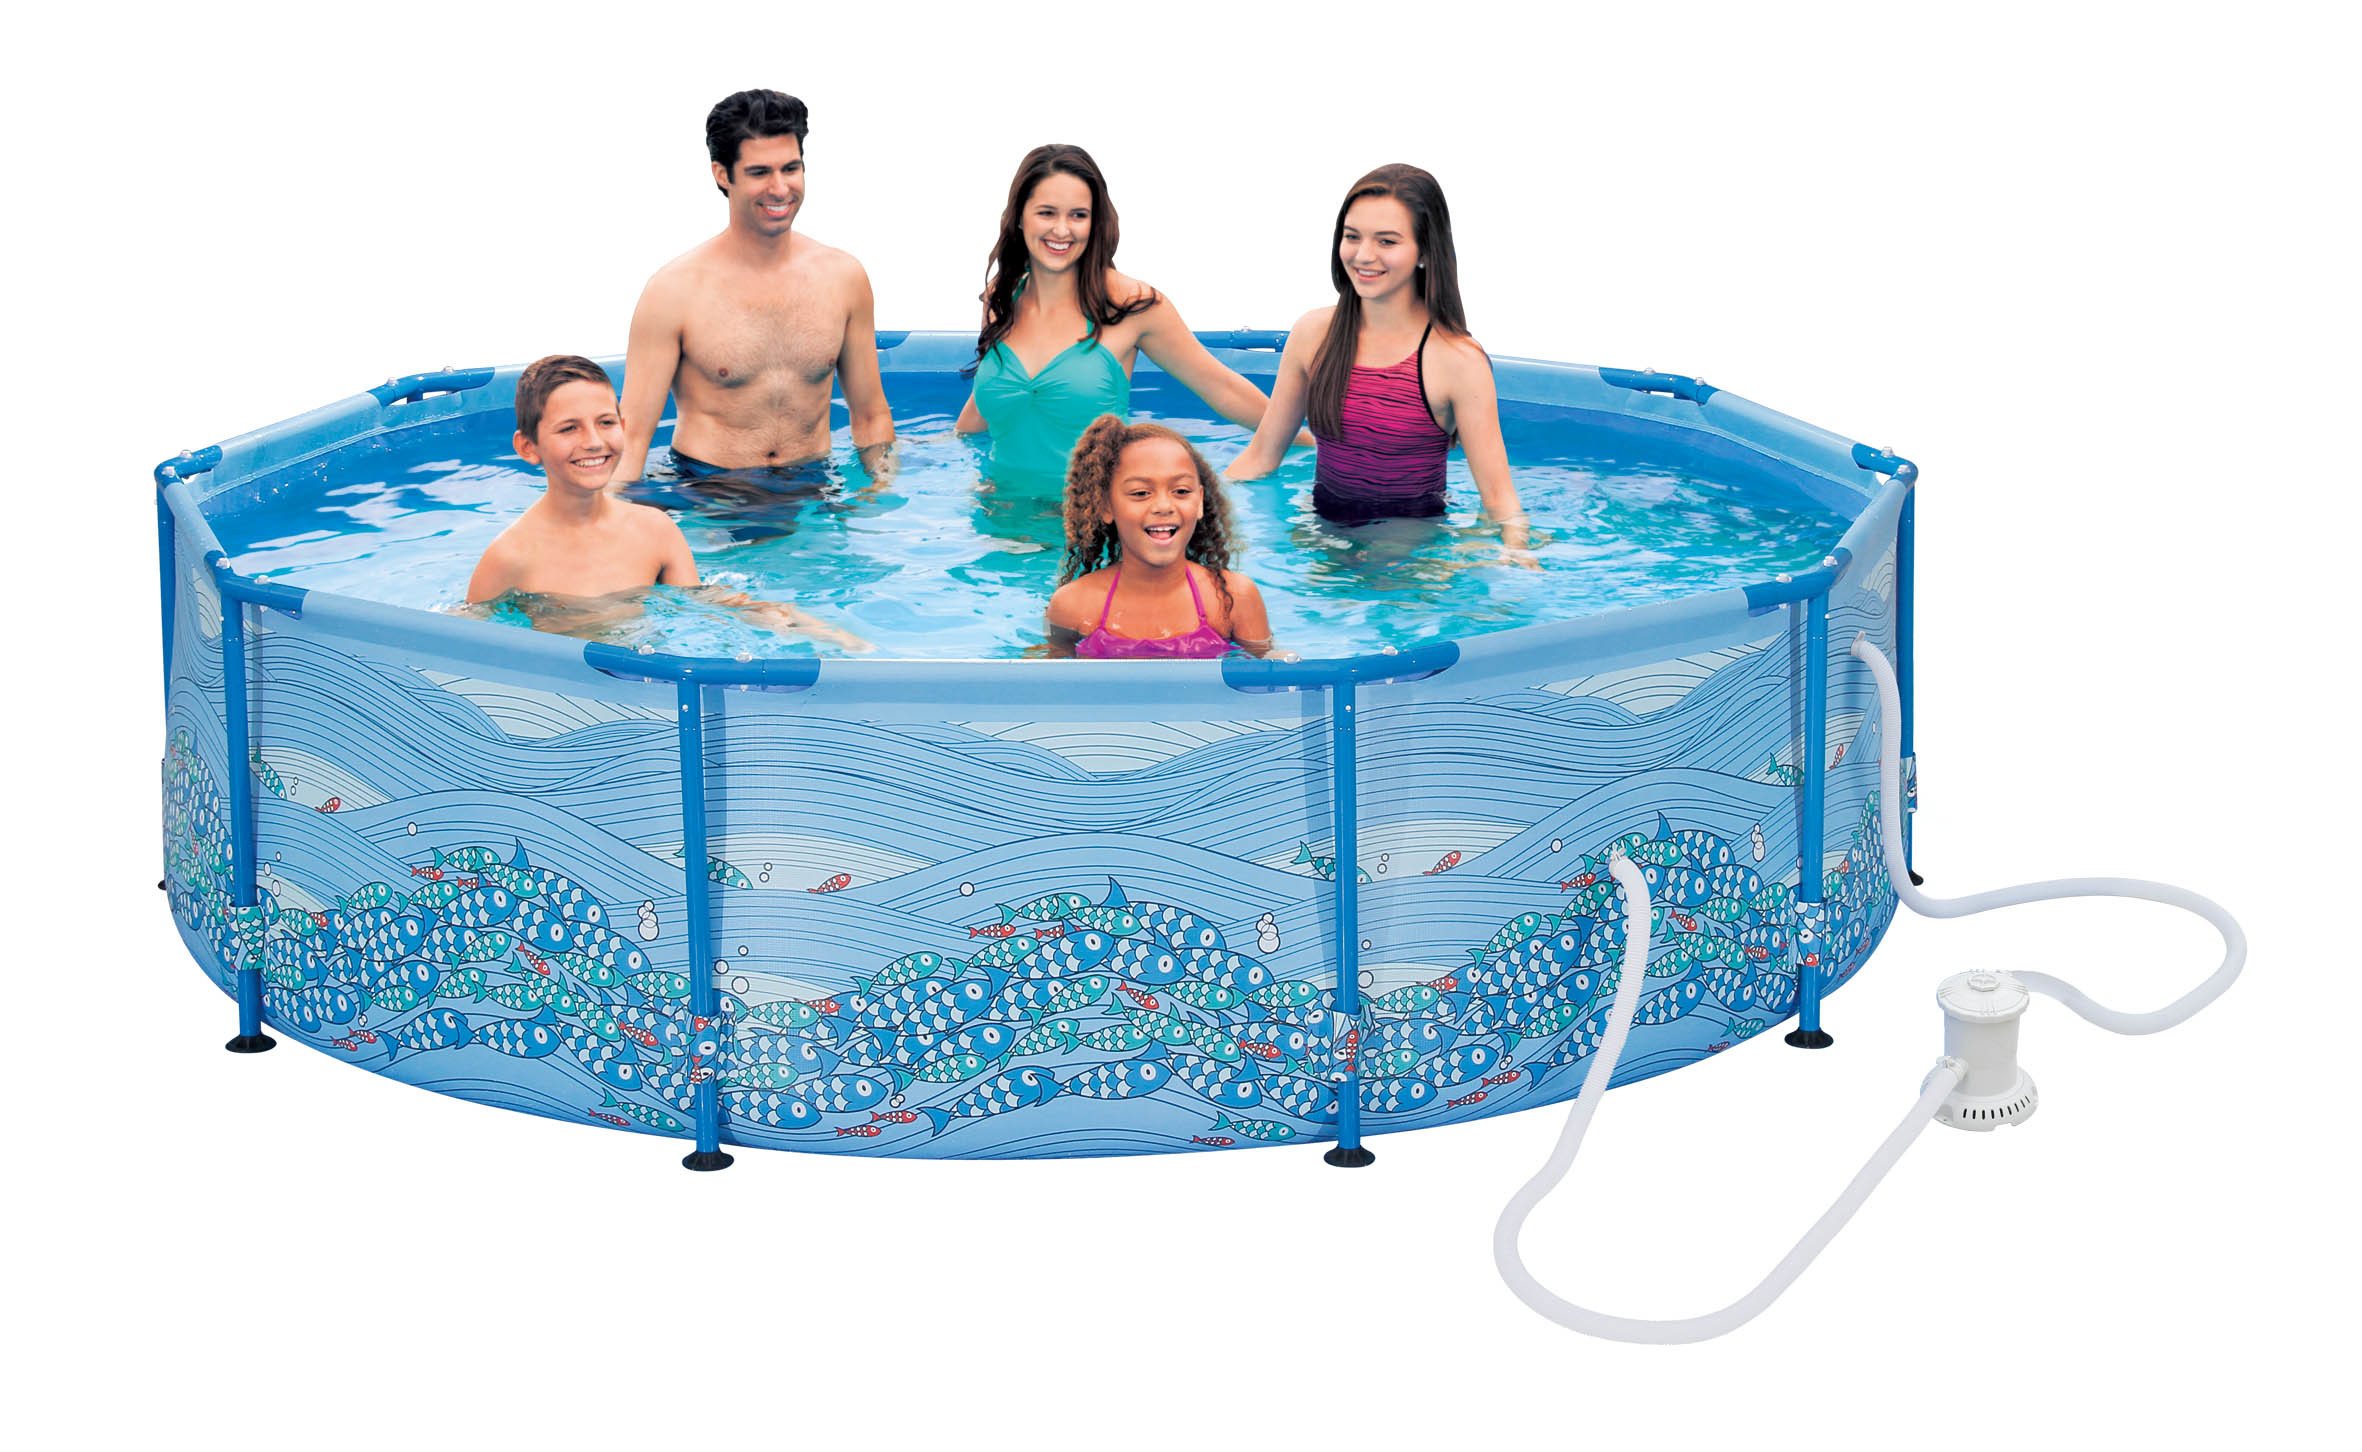 Piscine bois carrefour piscine bois cordoue x x m with for Piscine bois carrefour